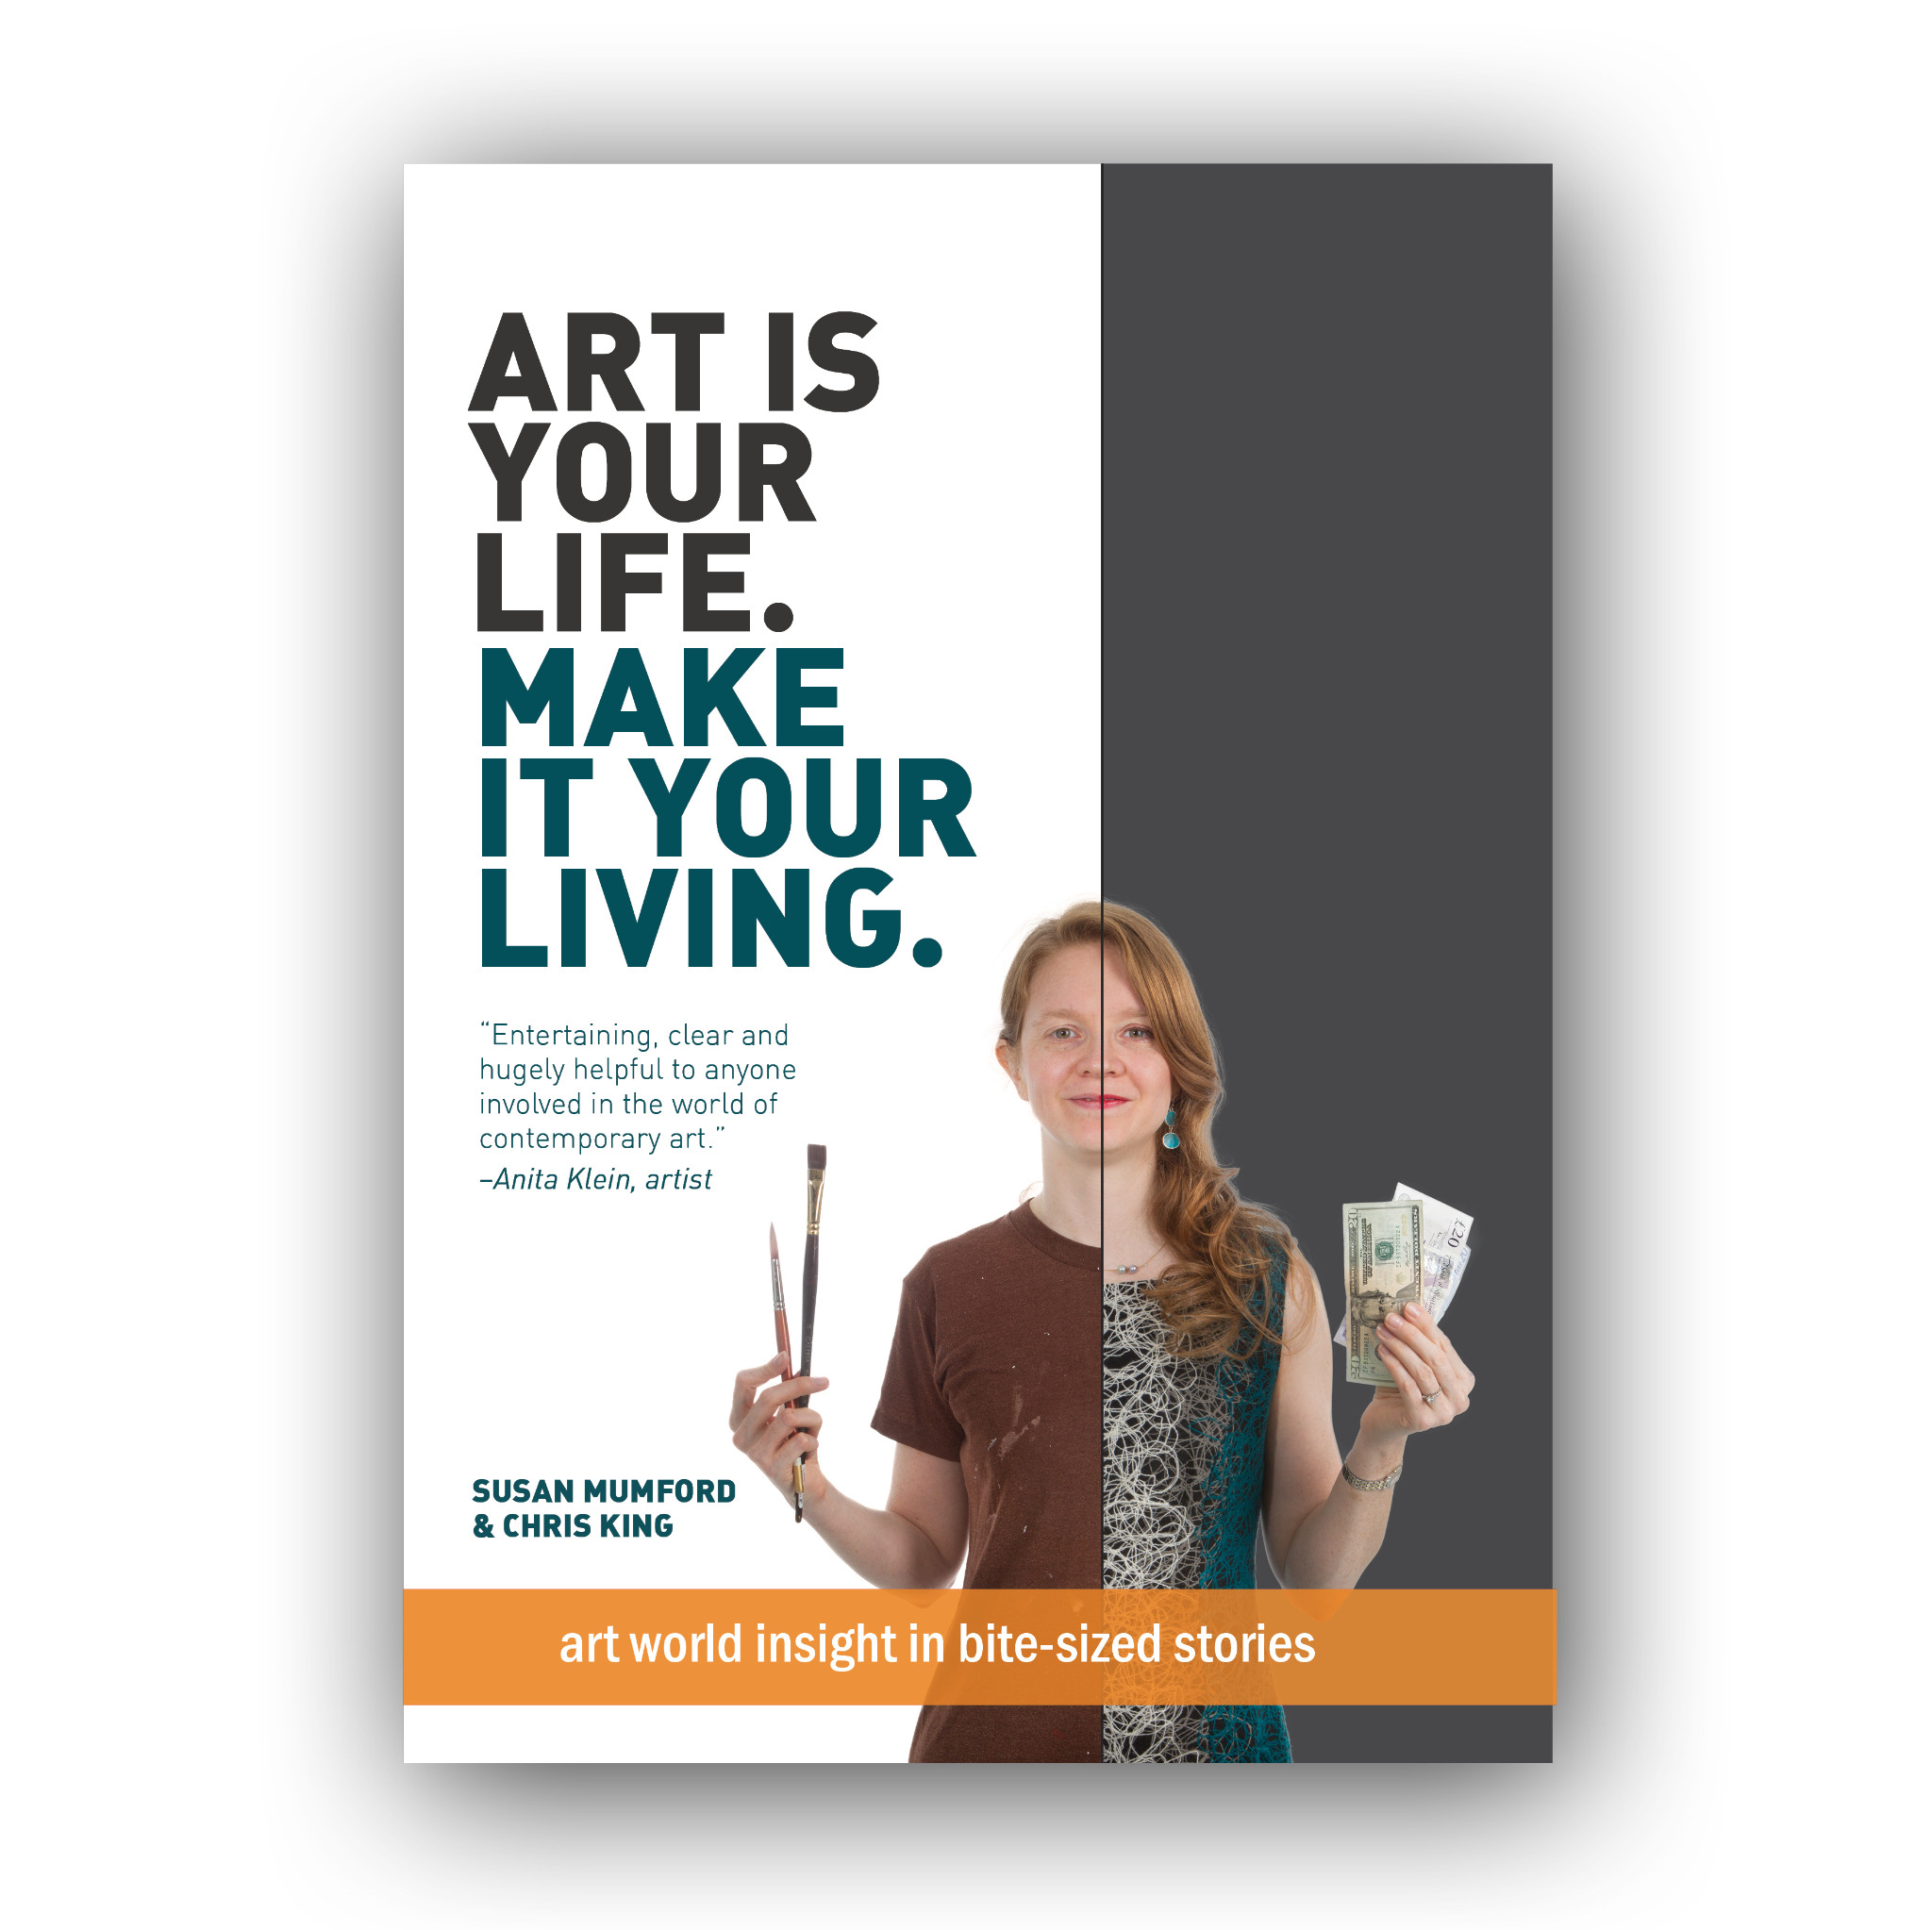 Book: 'Art is your life. Make it your living.' [GBP]